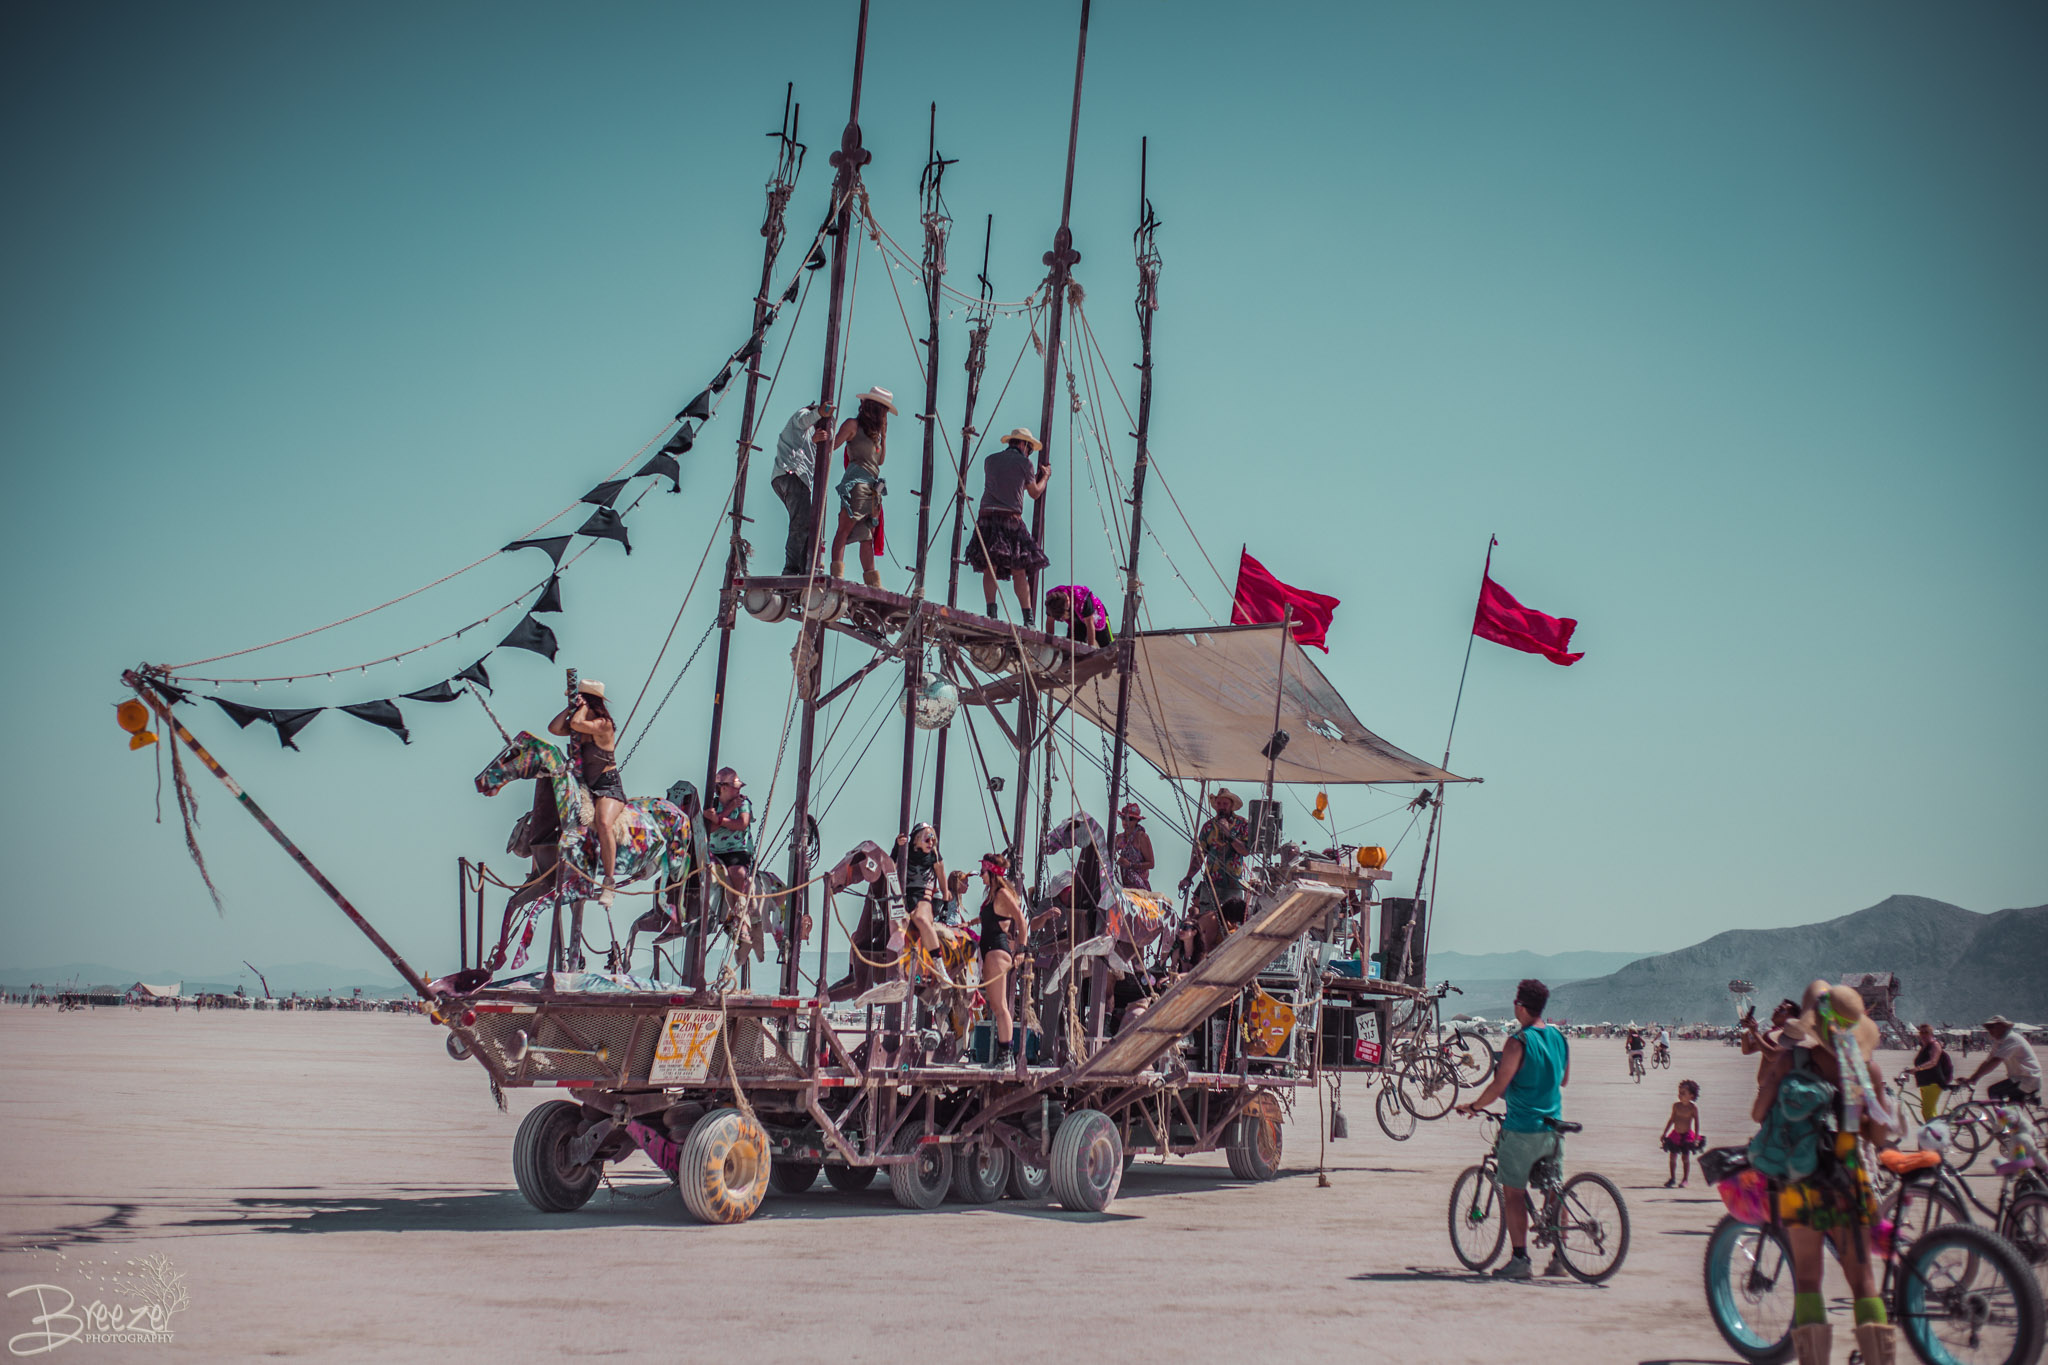 Brie'Ana Breeze Photography & Media - Burning Man 2018-4257.jpg